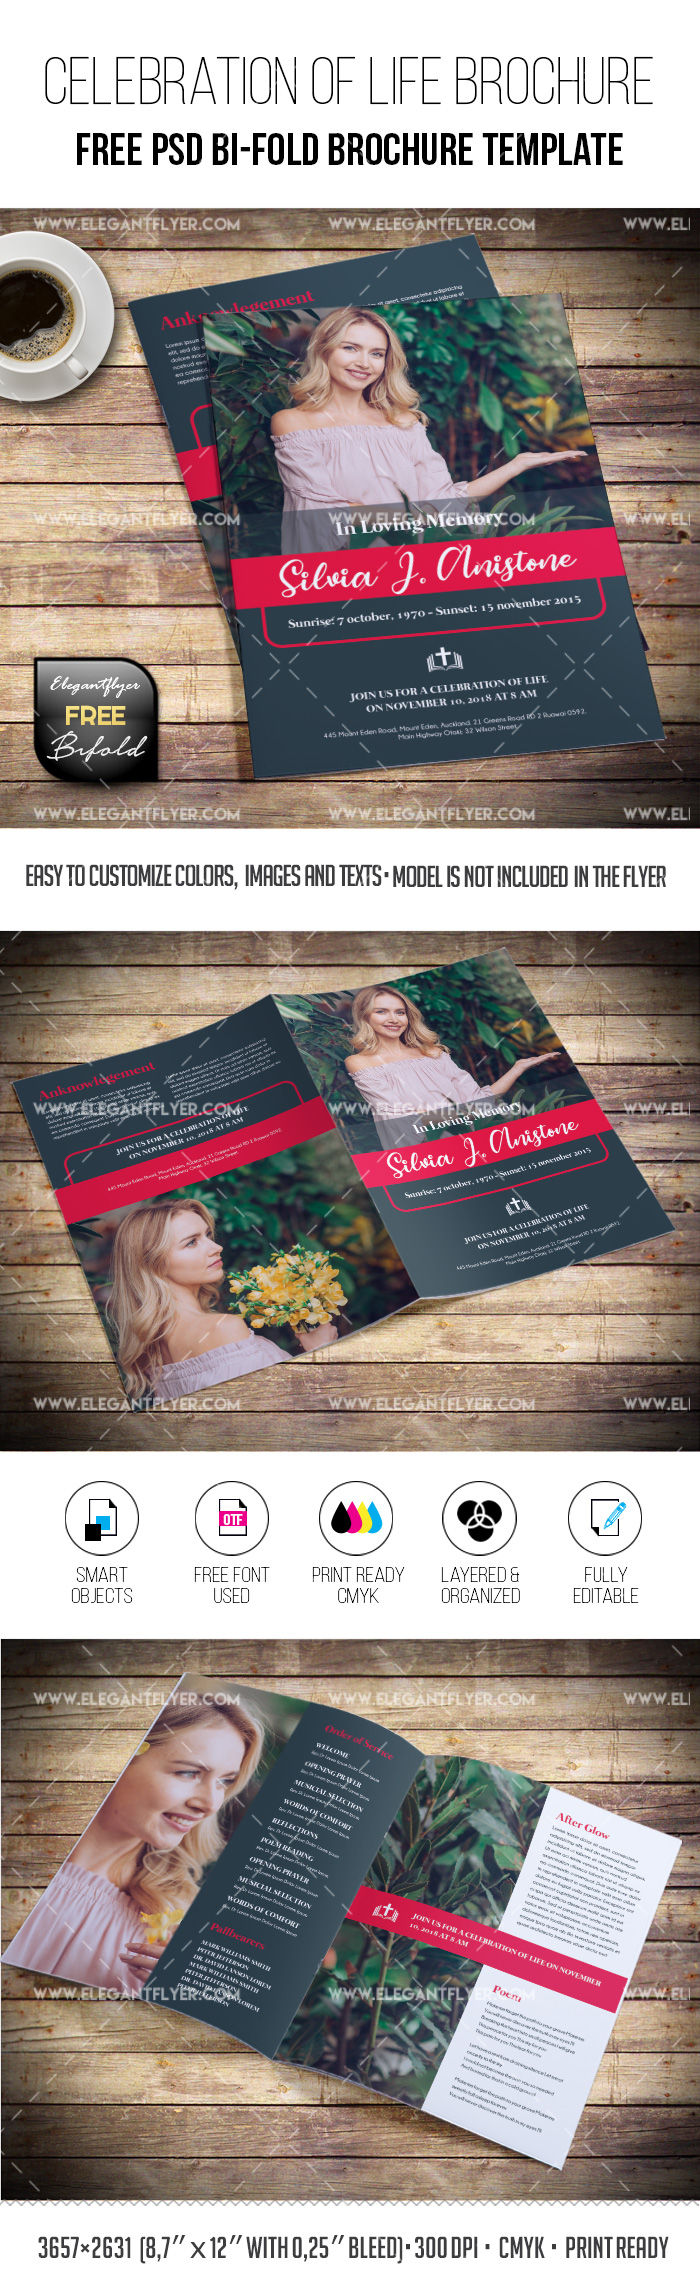 Celebration of life – Free Funeral Brochure Template